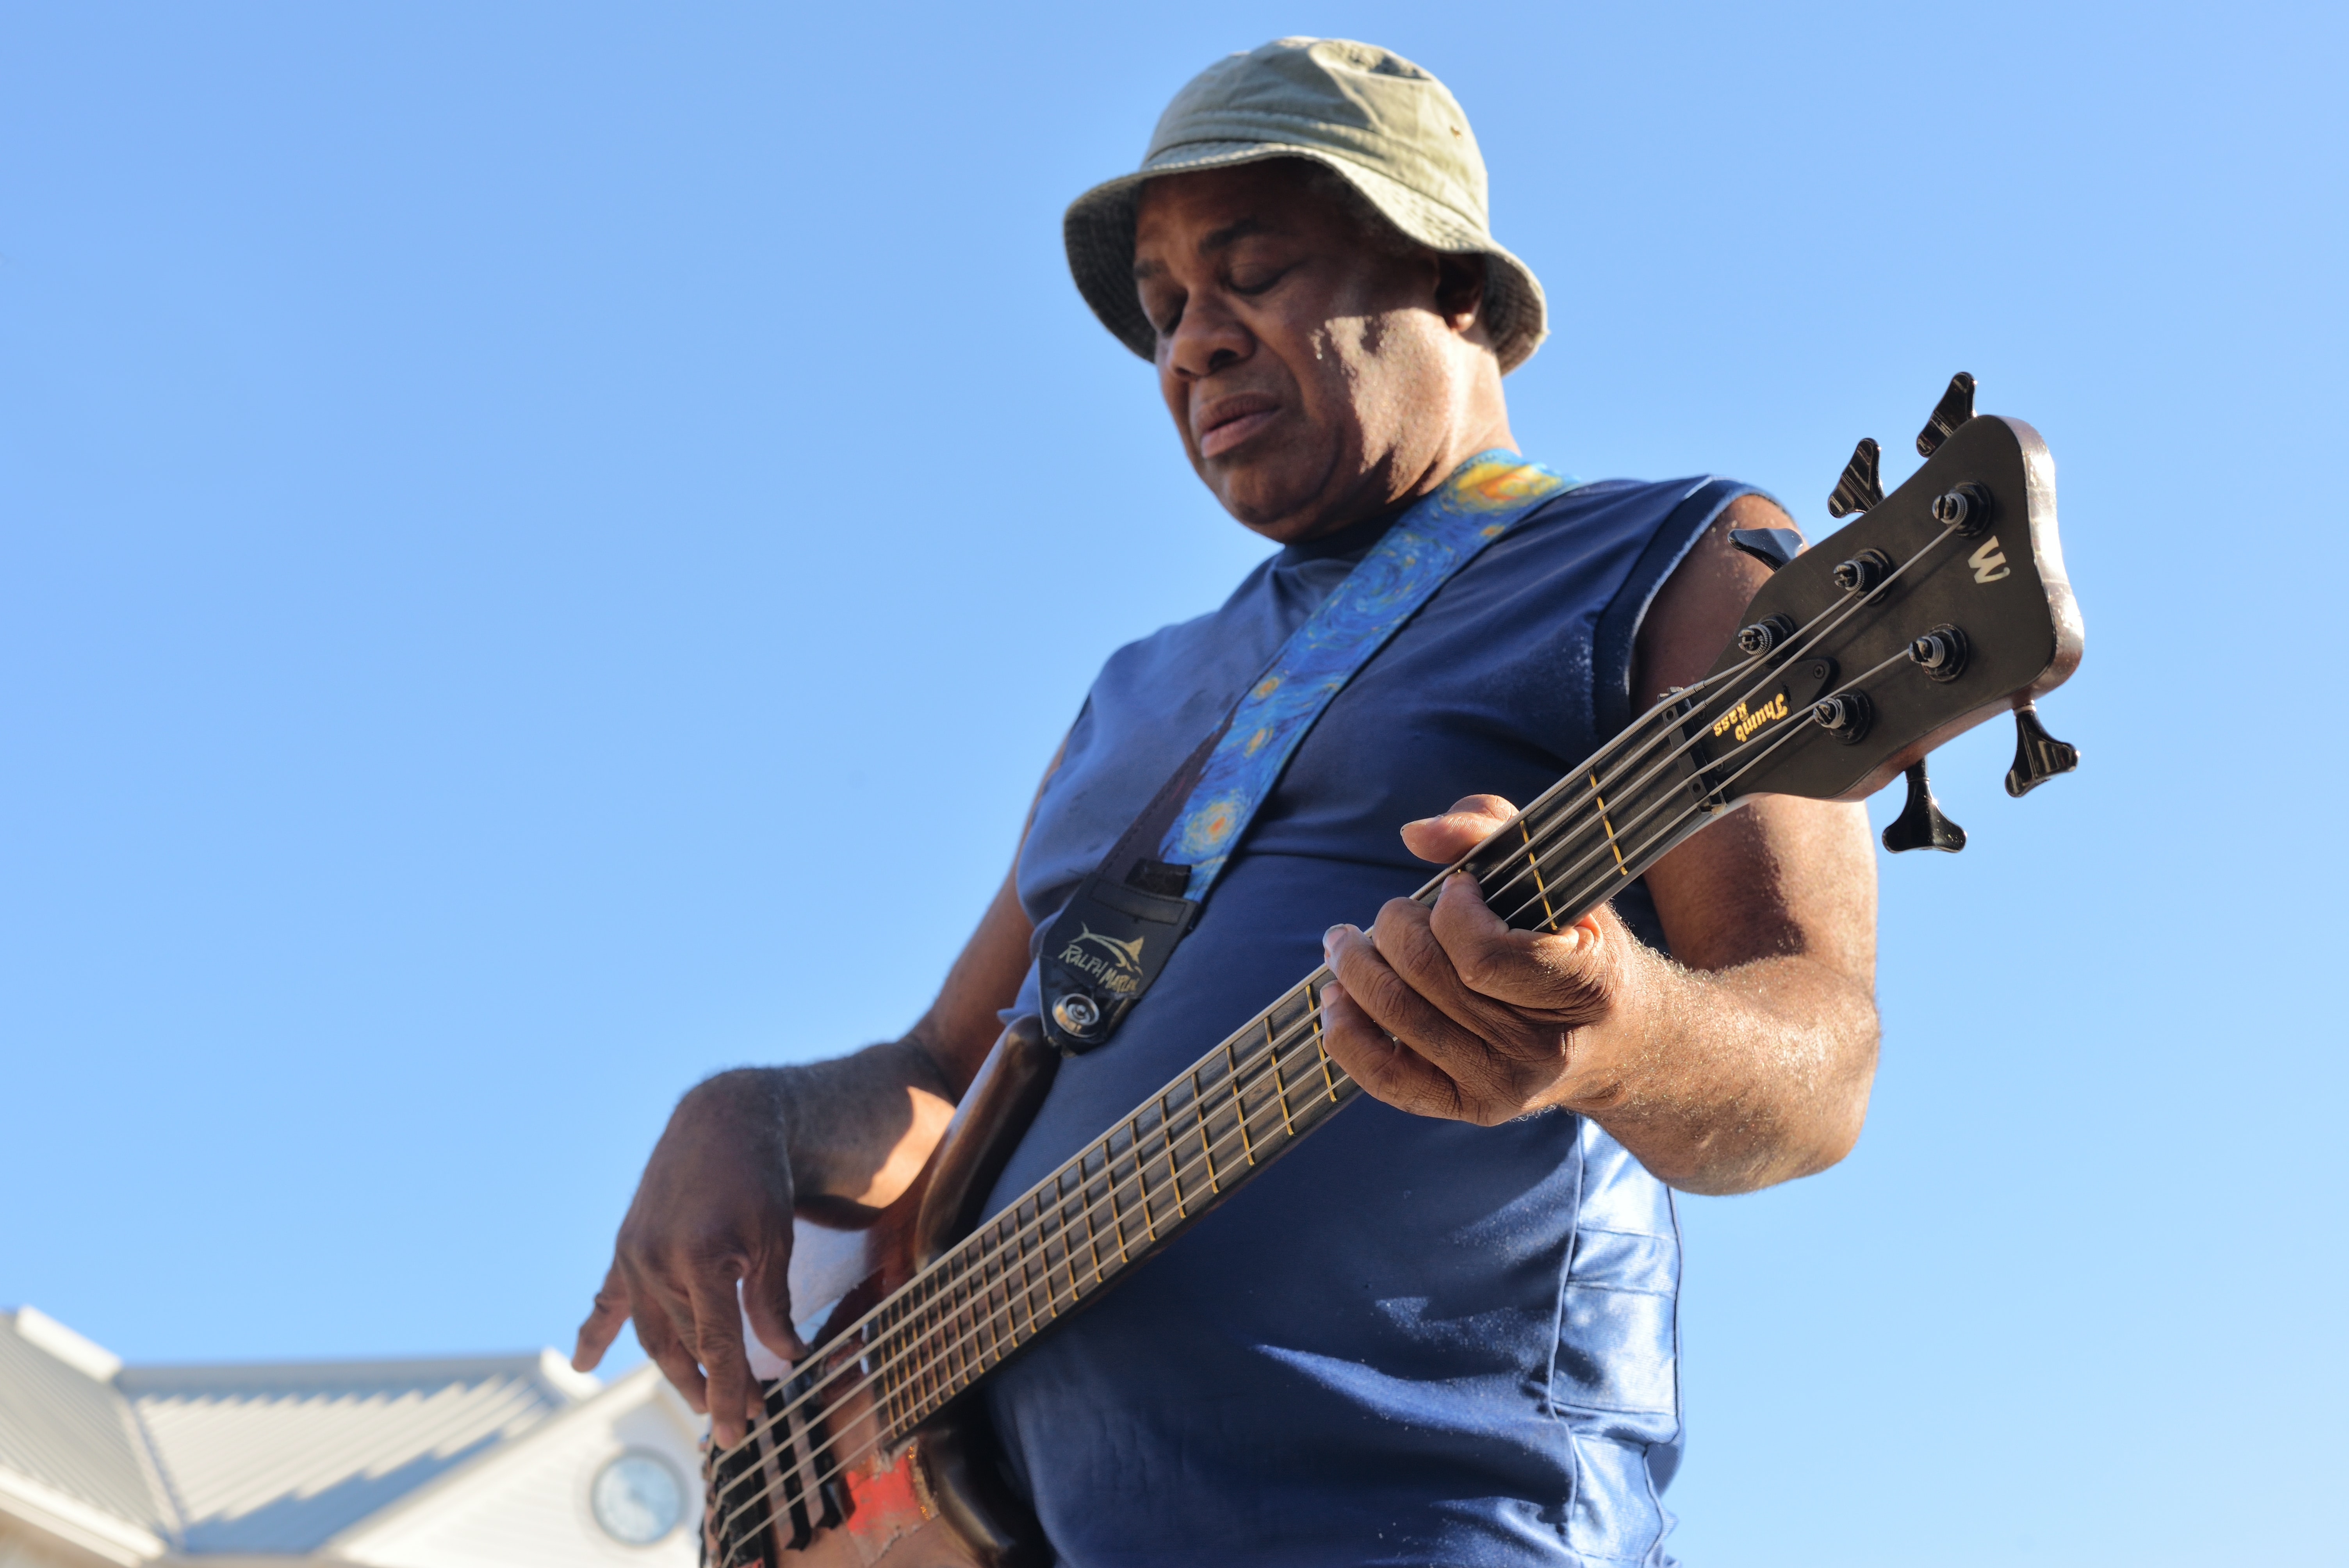 man playing electric bass guitar